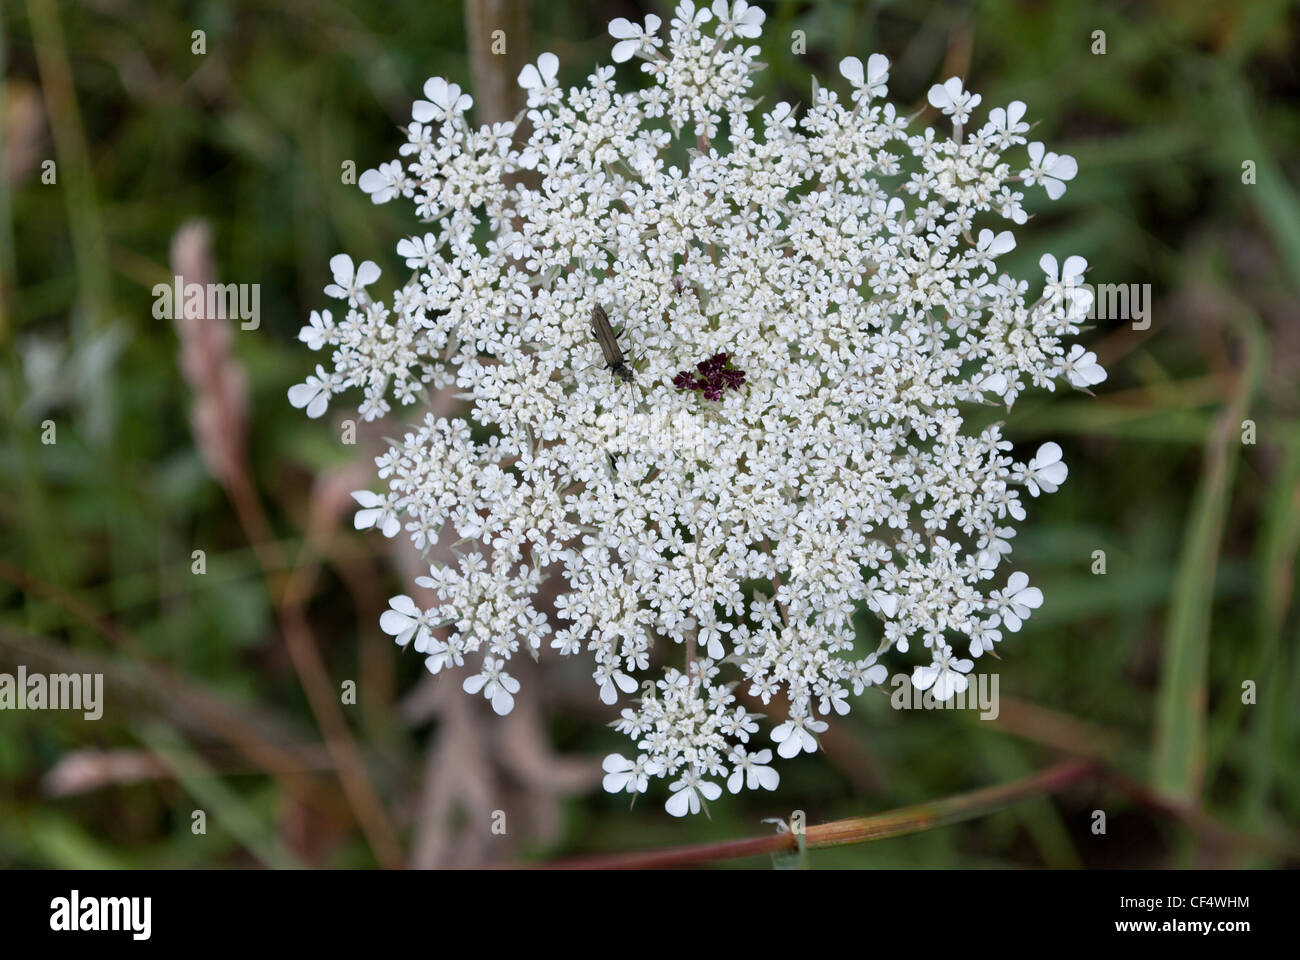 Cow Parsley Umbel Small White Stock Photos Cow Parsley Umbel Small